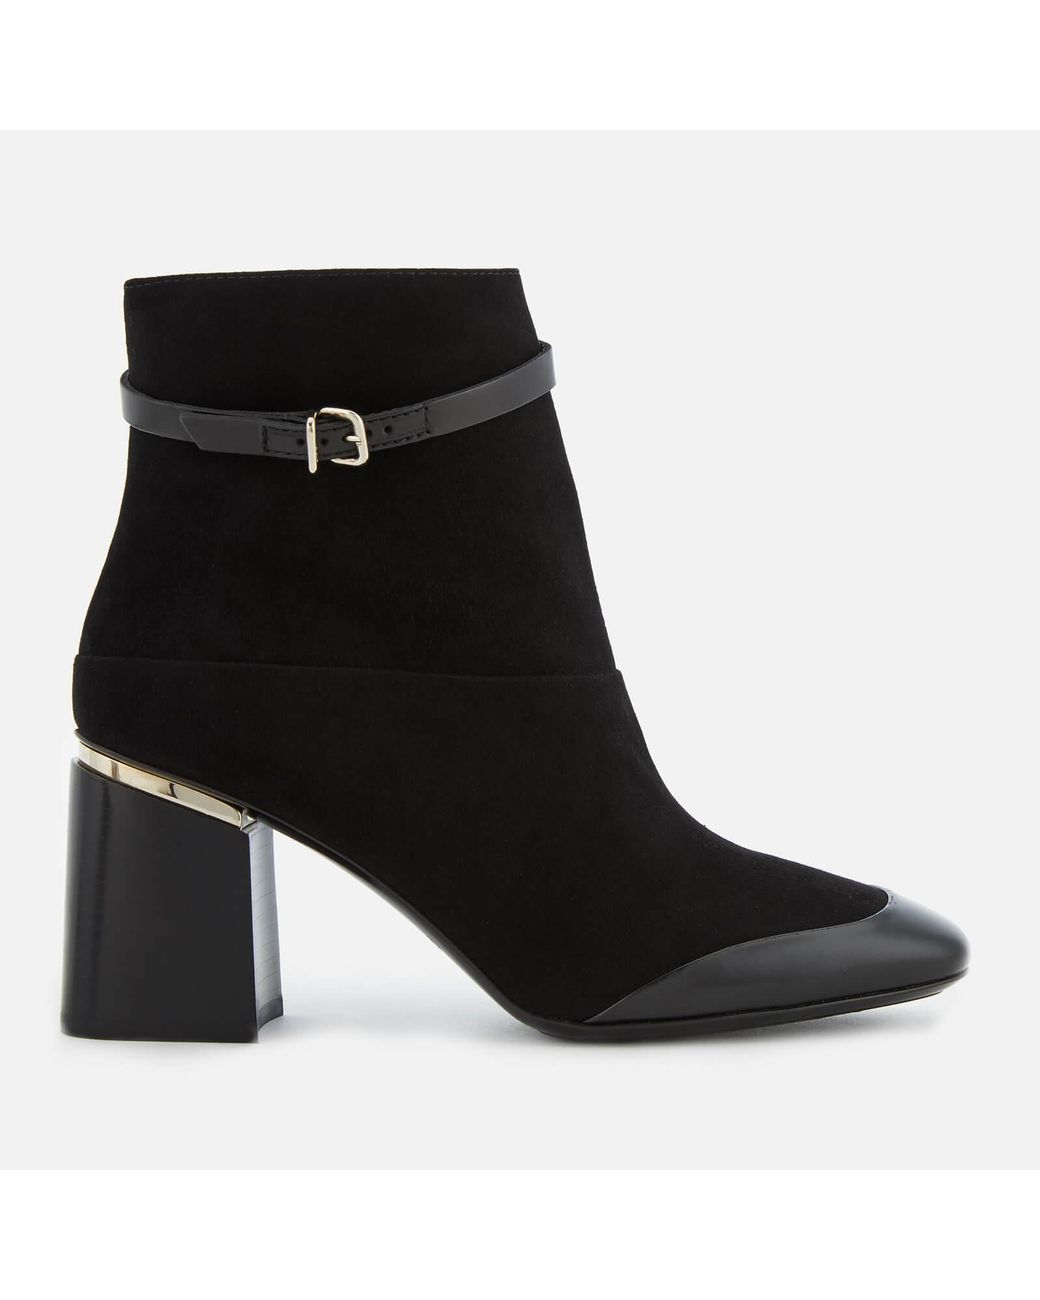 bfa75ff0e4 Tod's Block Heeled Ankle Boots in Black - Lyst